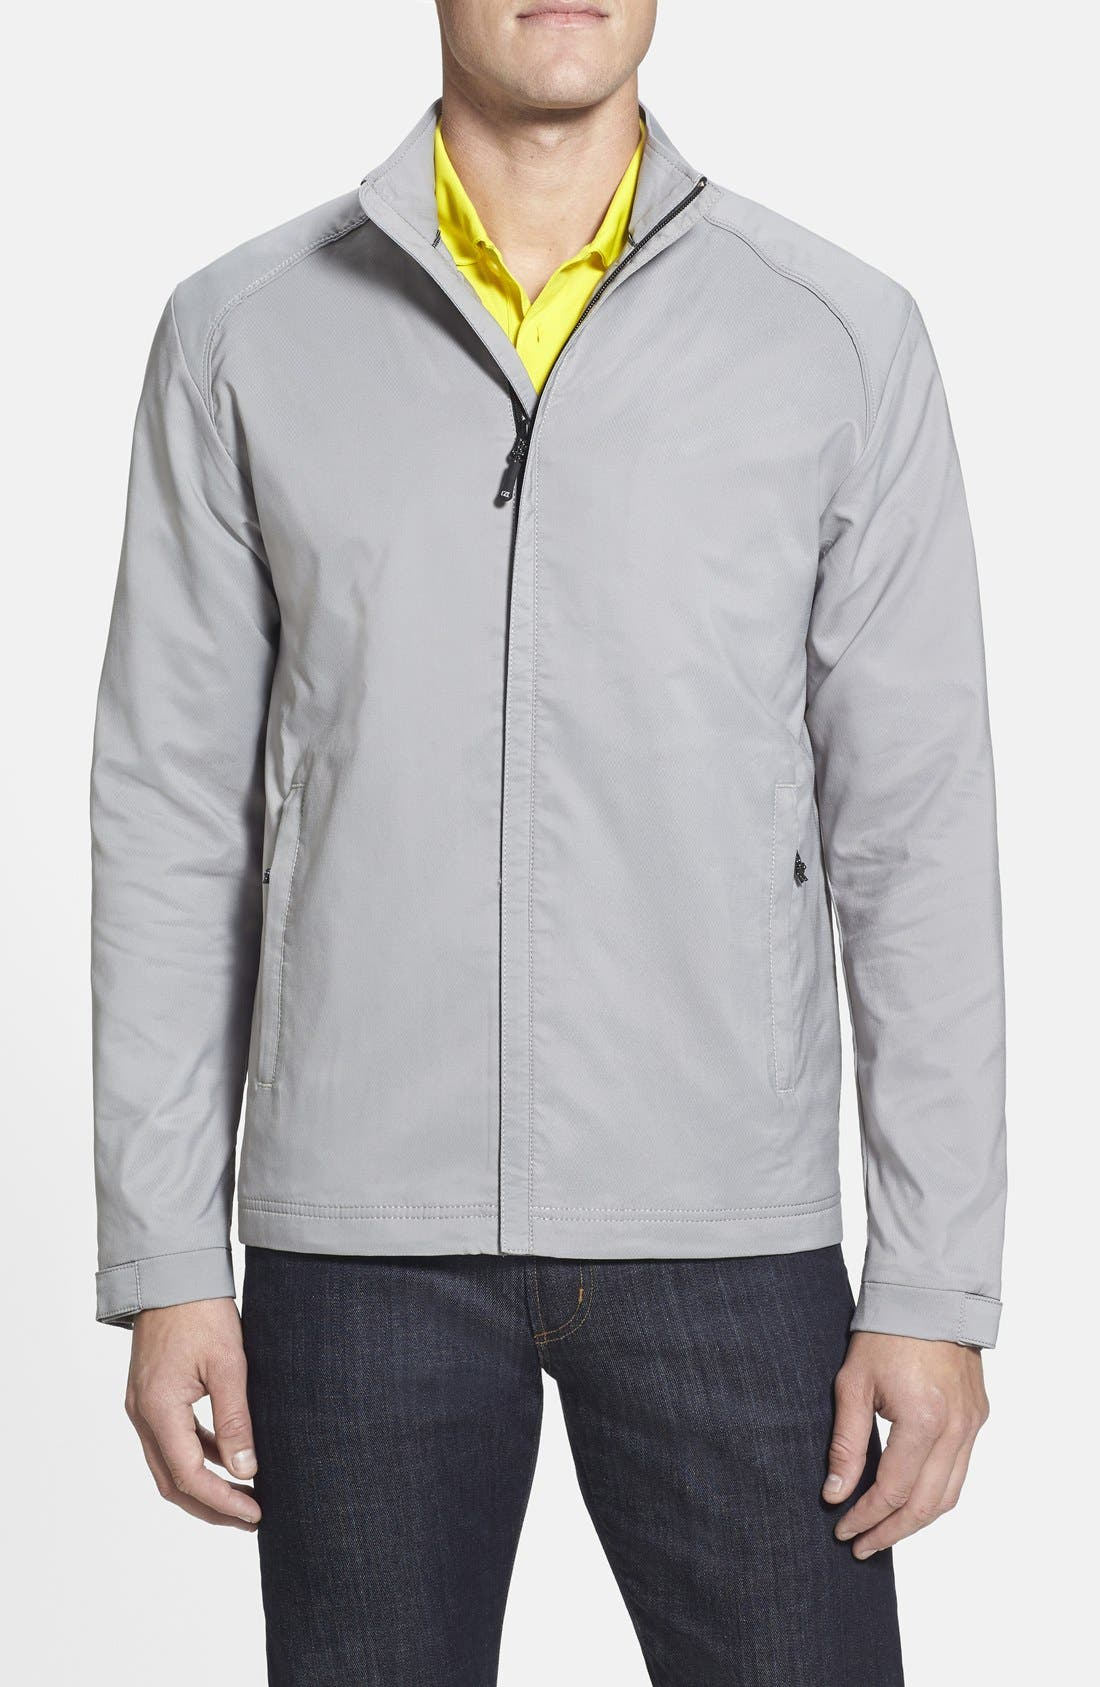 CUTTER & BUCK, Blakely WeatherTec<sup>®</sup> Wind & Water Resistant Full Zip Jacket, Main thumbnail 1, color, OXIDE GREY